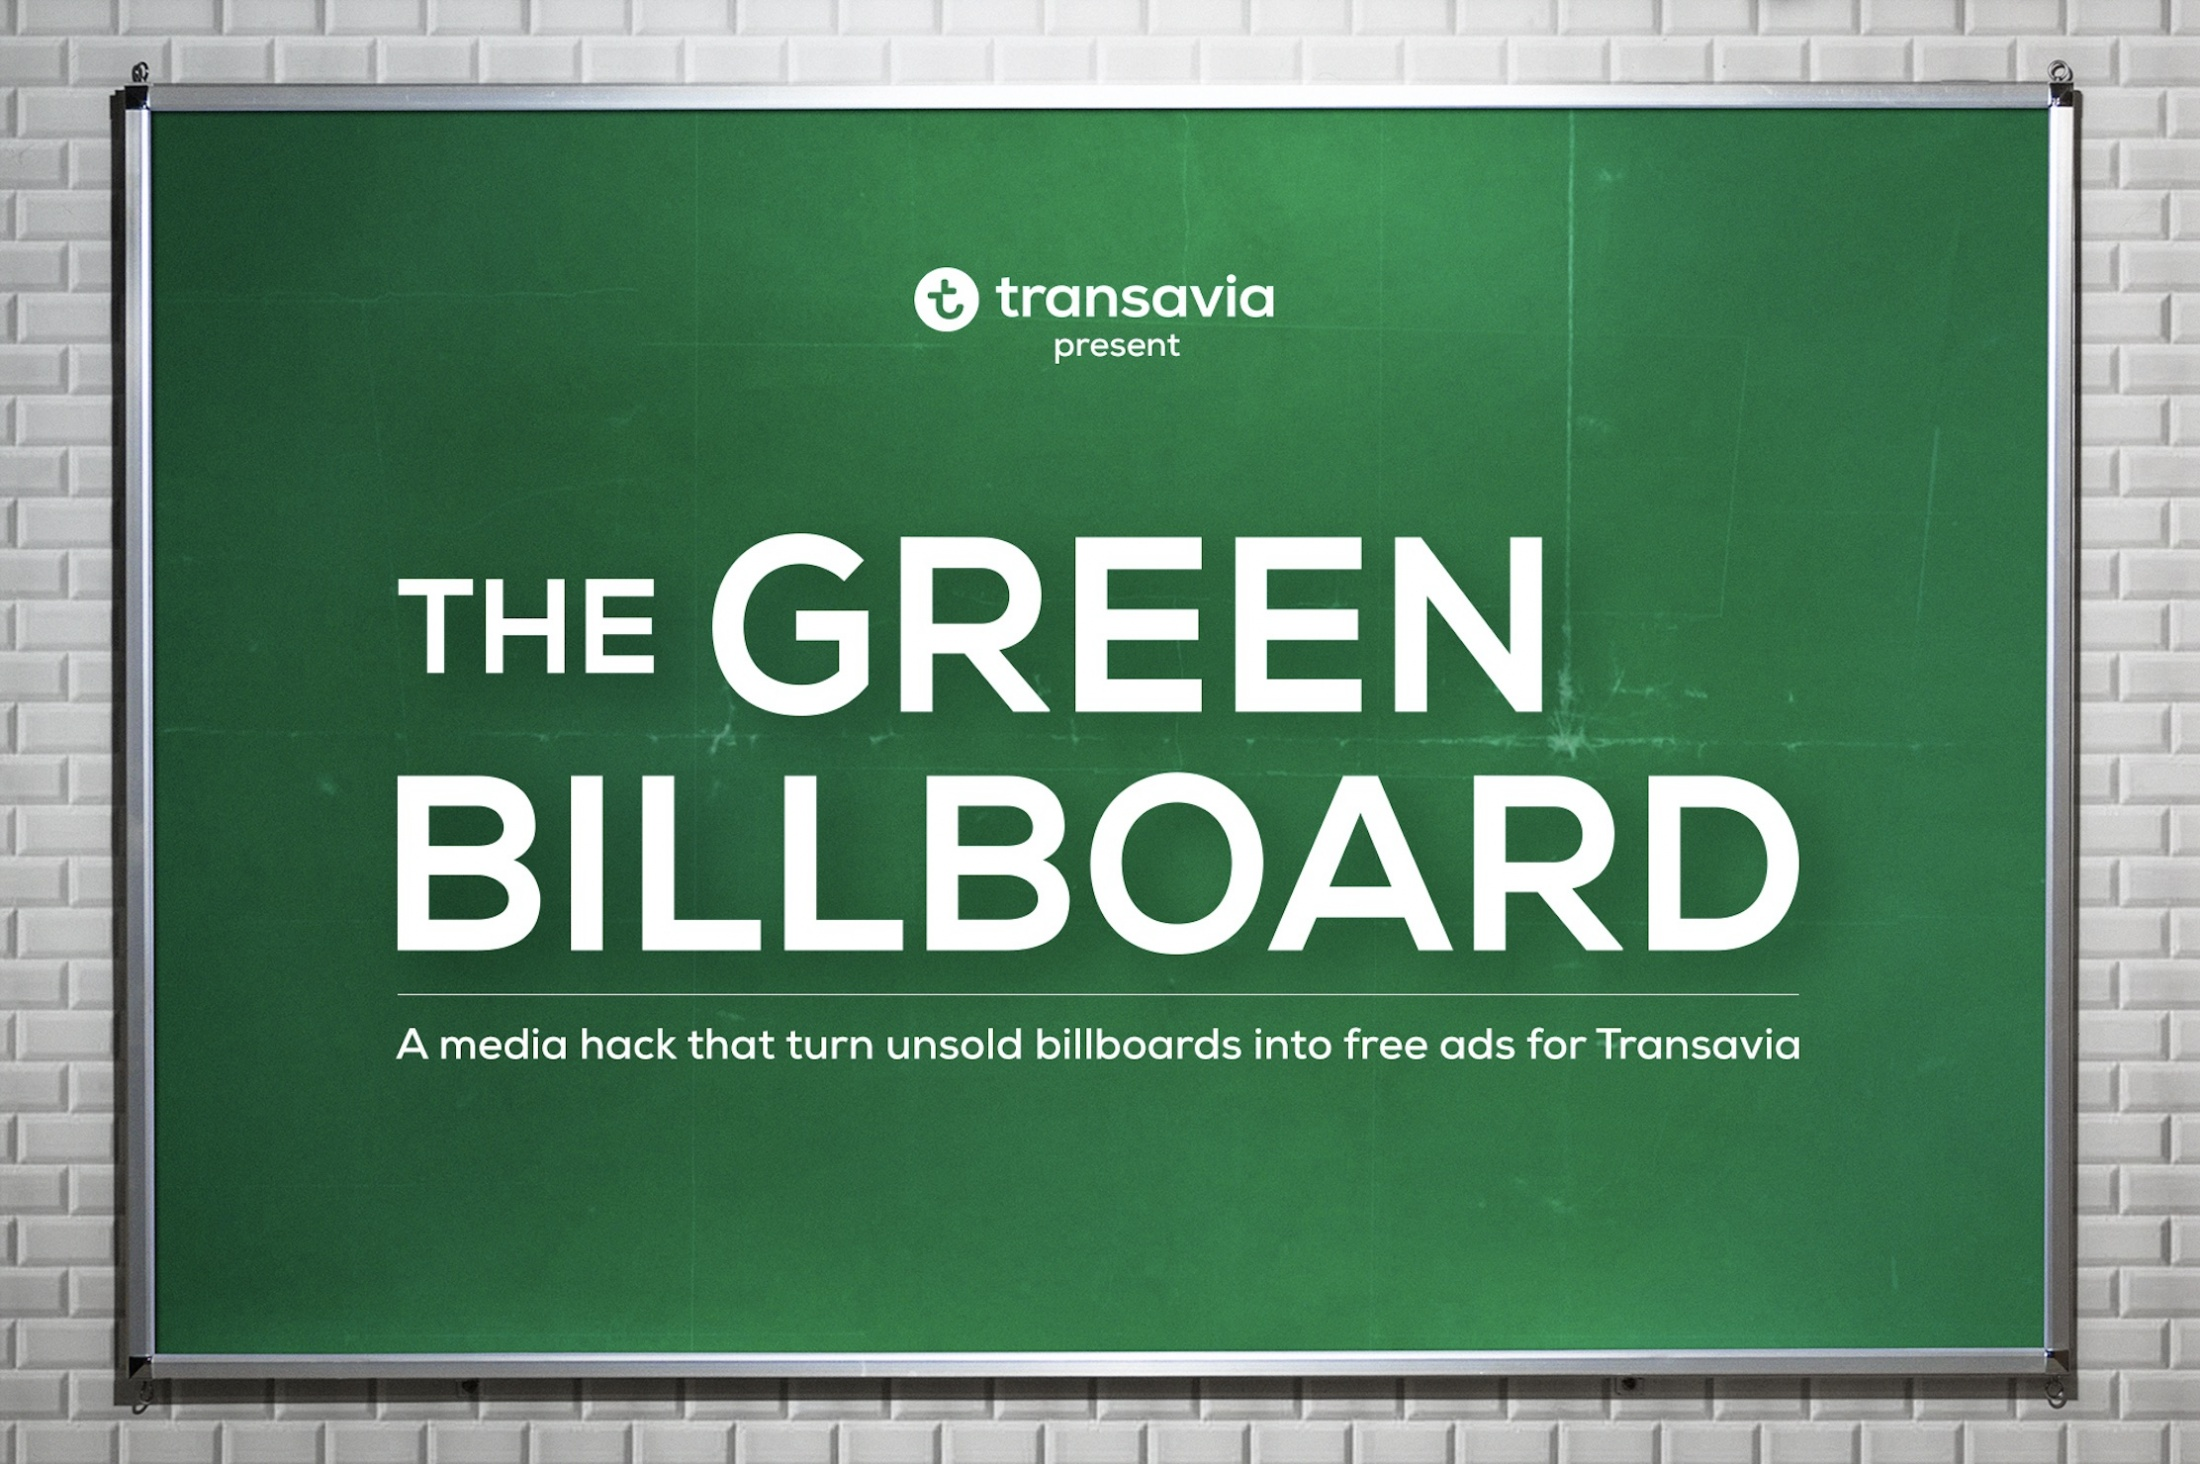 Image Media for The Green Billboard